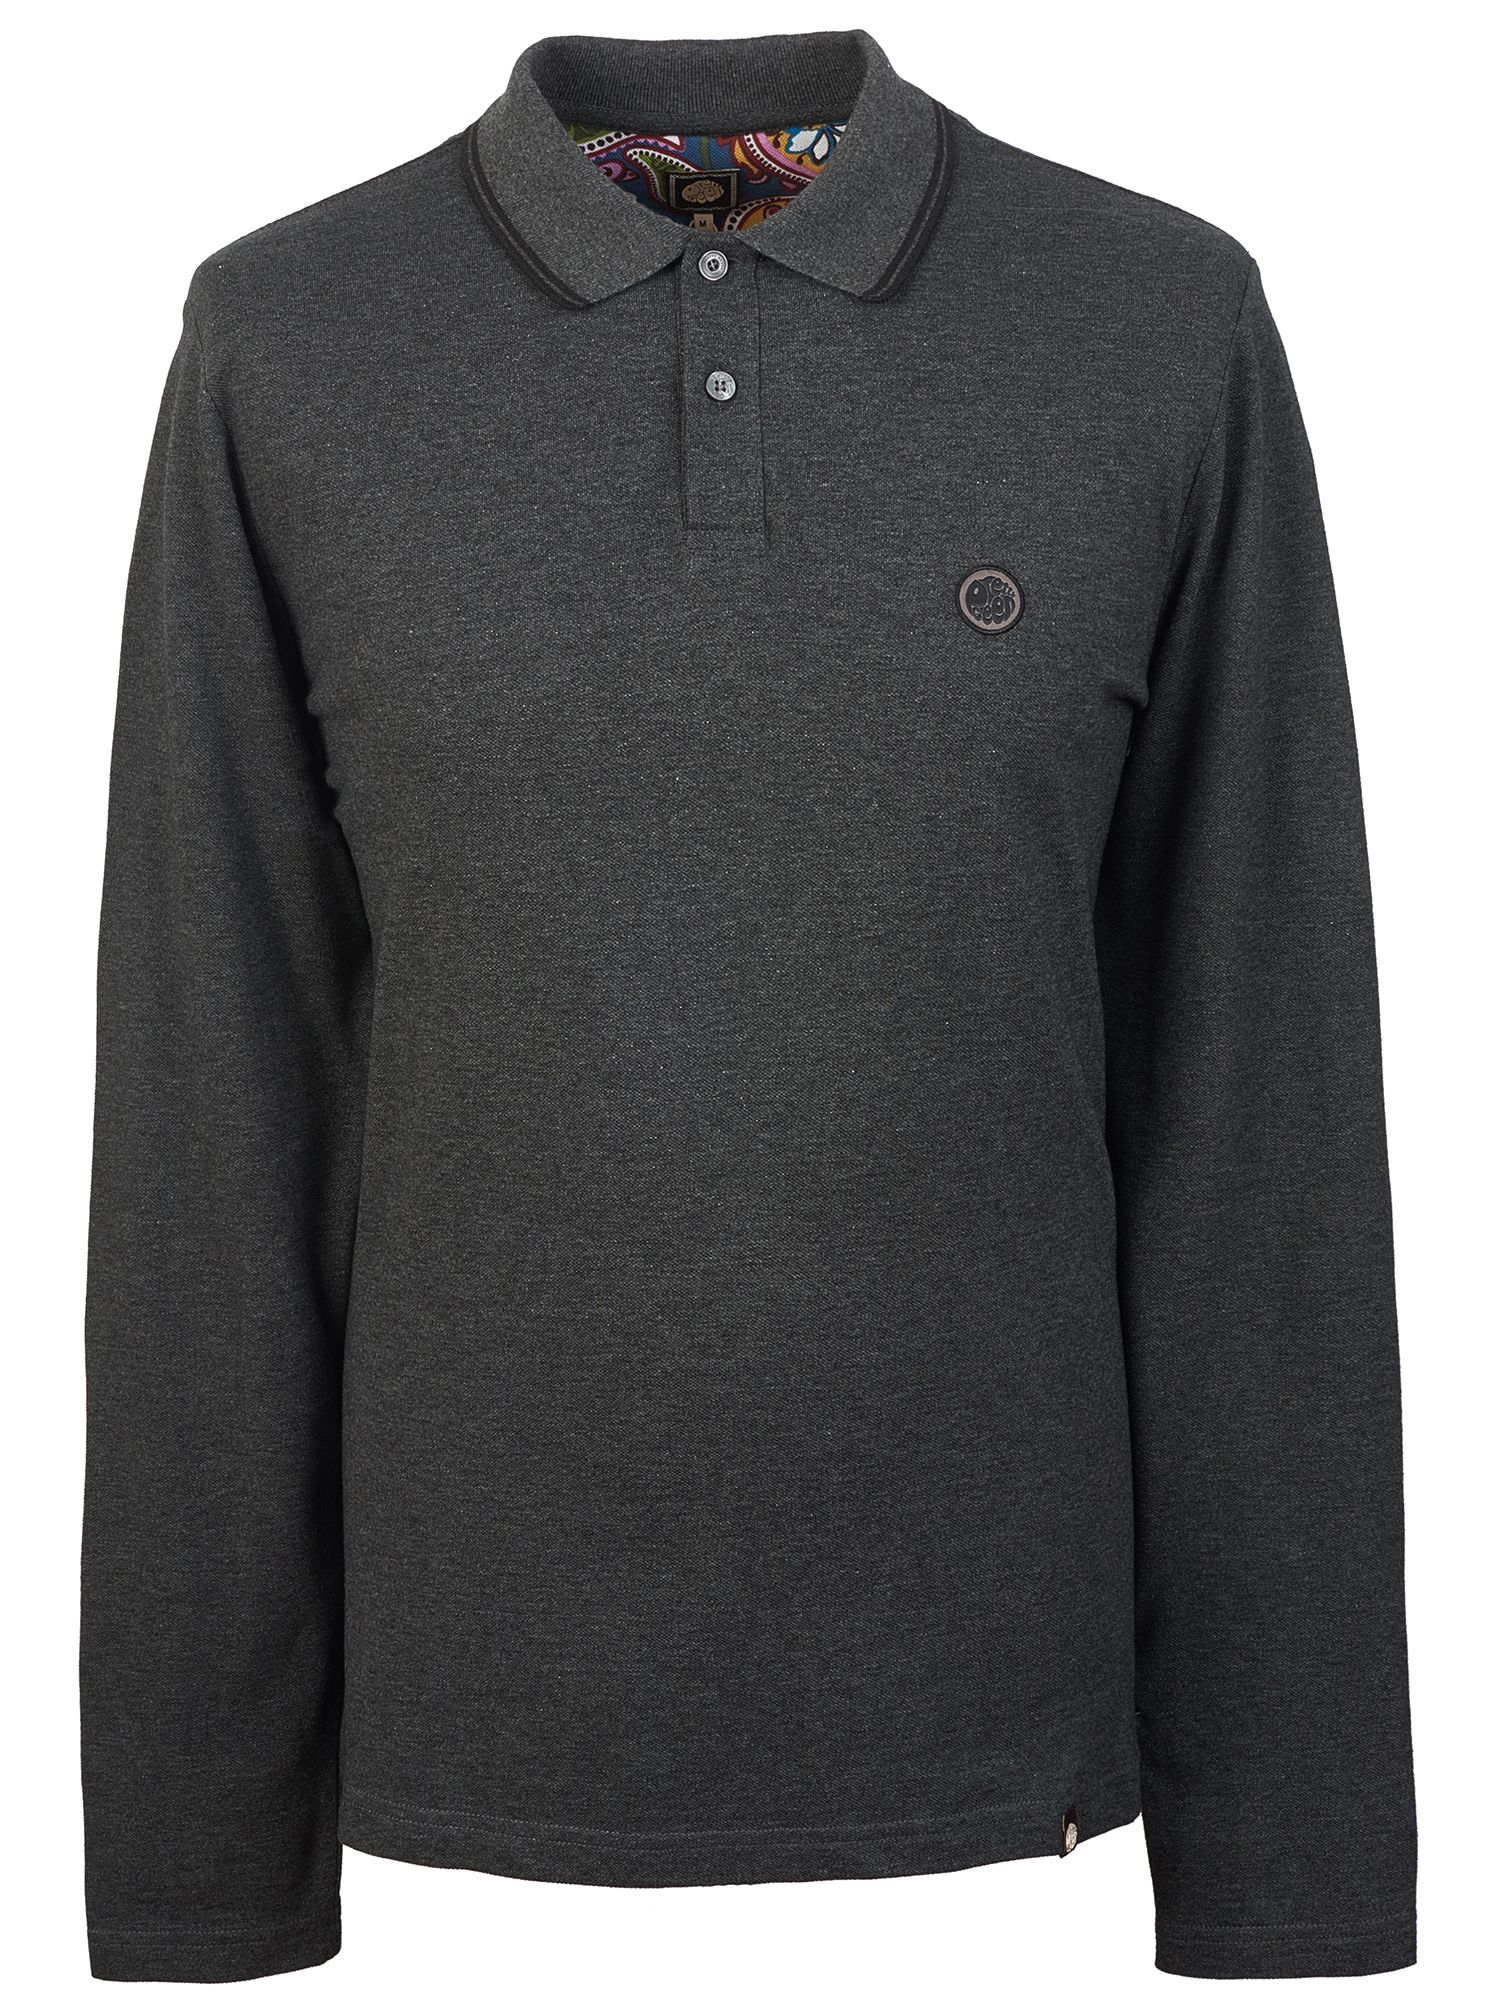 Men's Pretty Green Long Sleeve Tipped Pique Polo Shirt, Grey